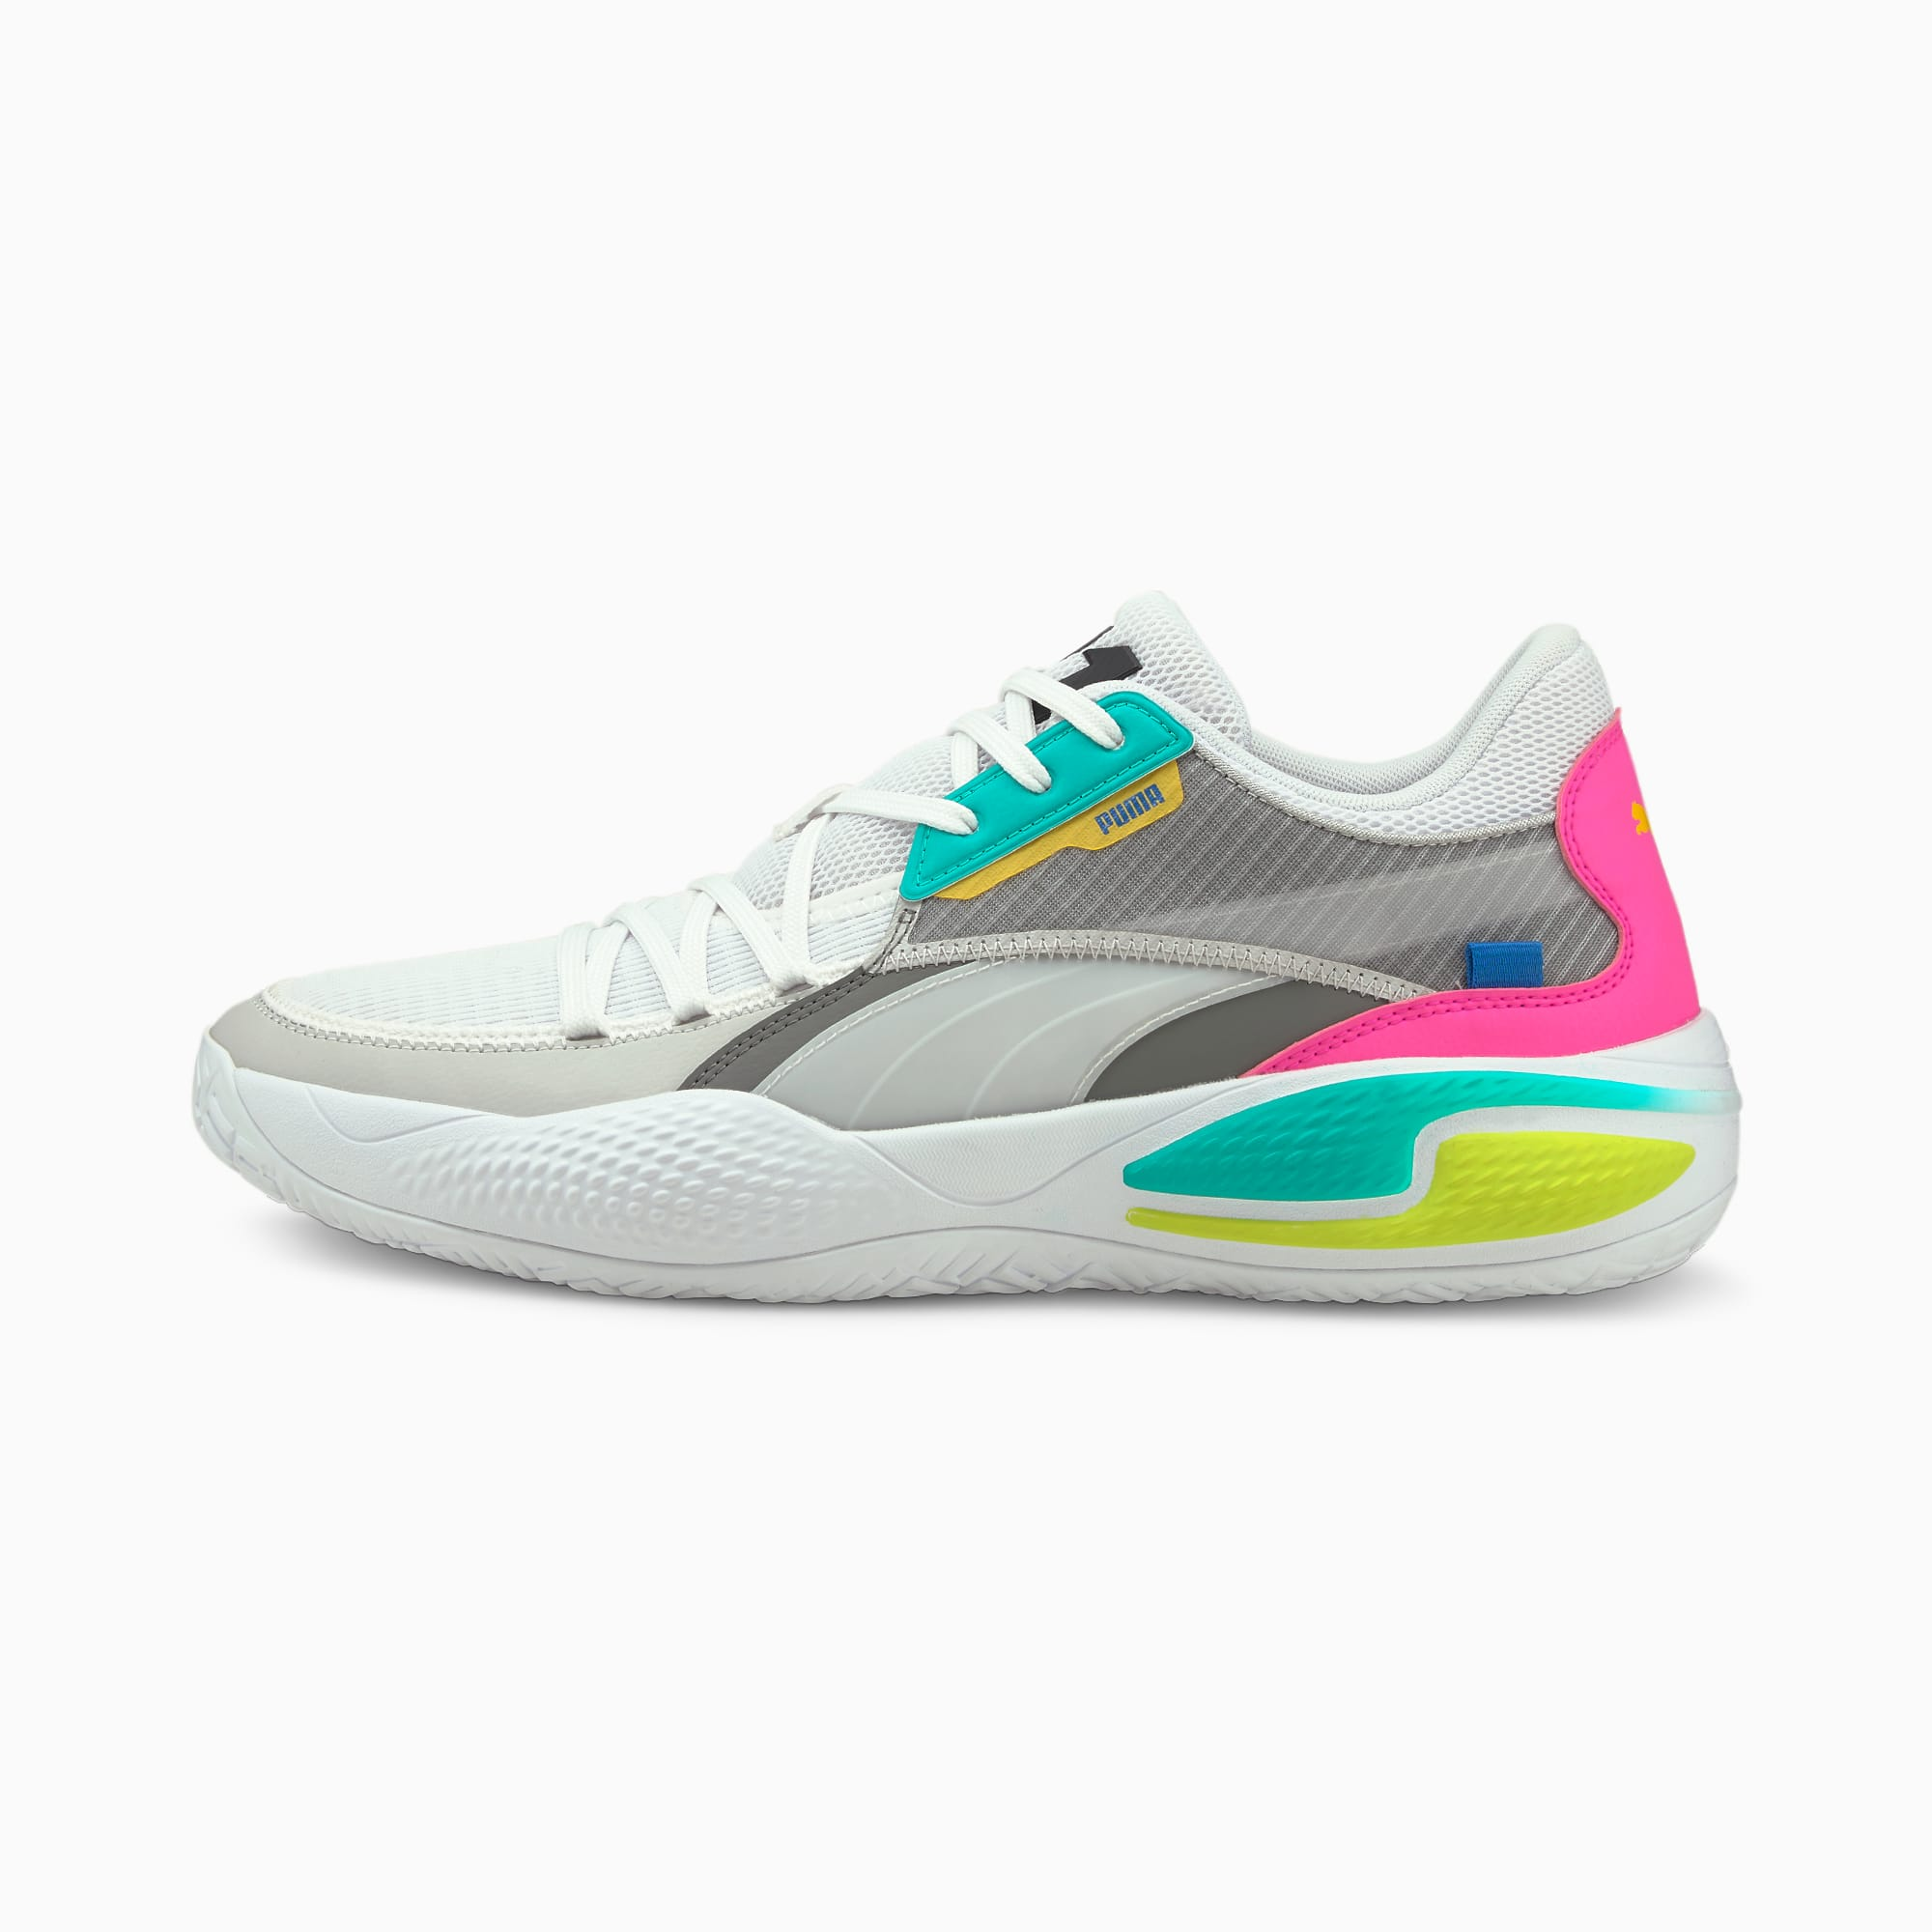 Court Rider 2K Basketball Shoes